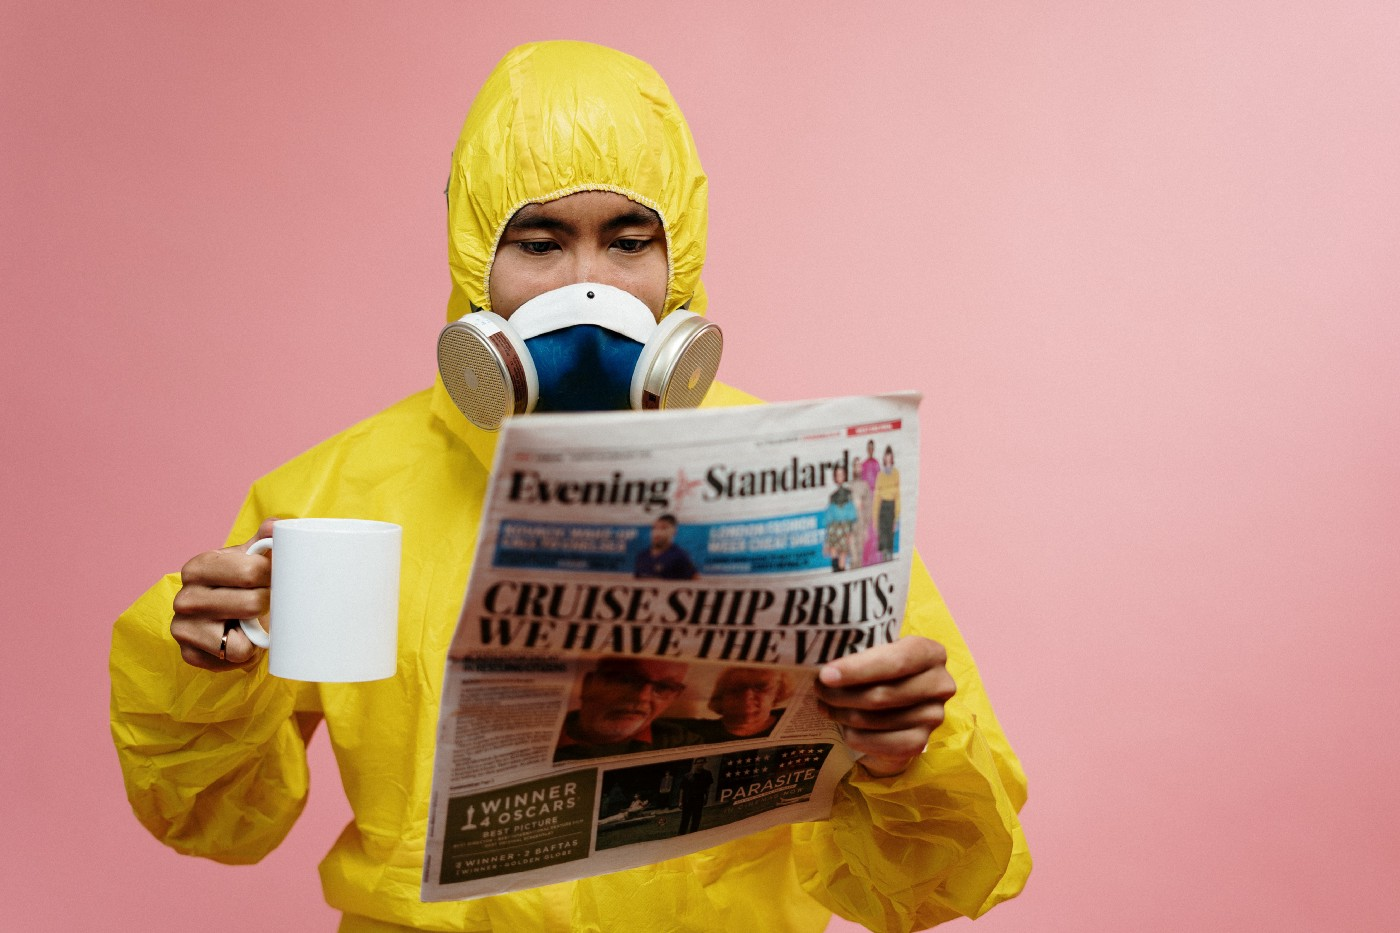 Dude in protective gear with coffee reads newspaper. For some reason the background is pink. It looks weird.